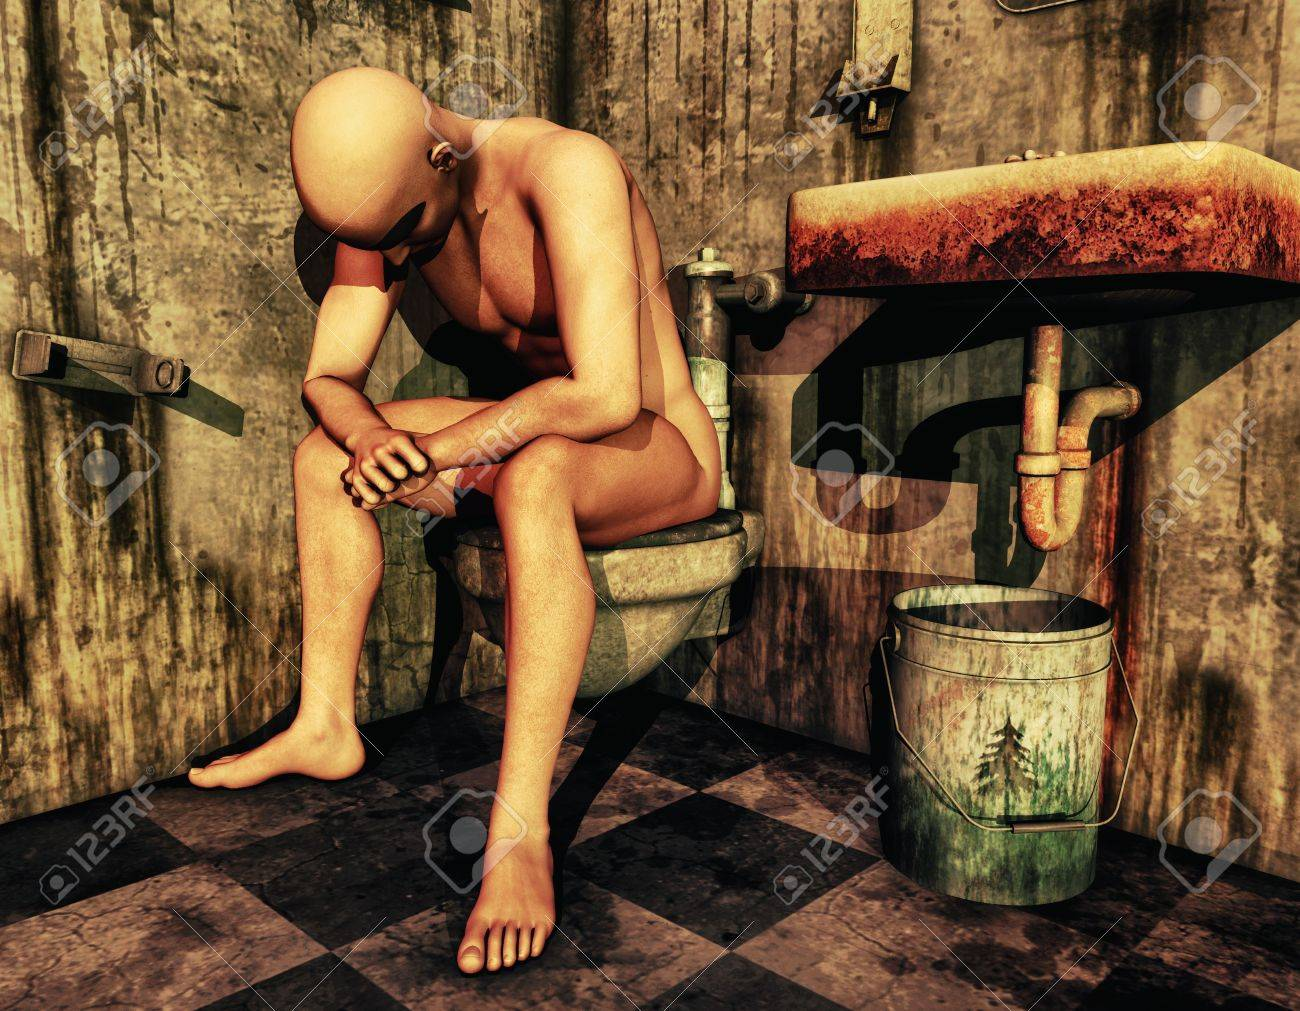 3D Rendering naked man sitting on the toilet Stock Photo - 9972075